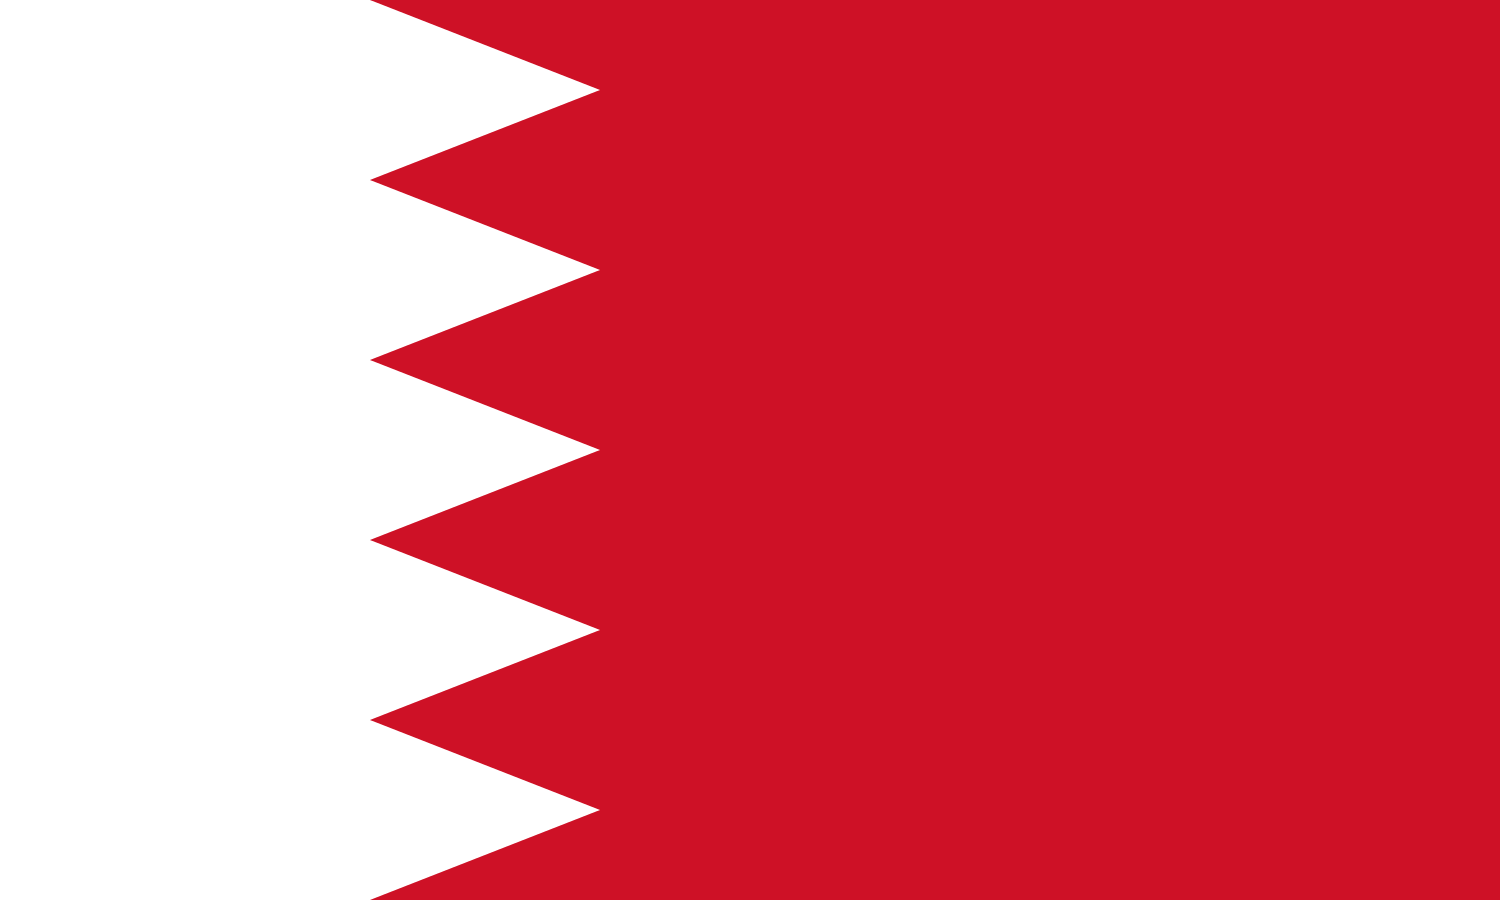 Central Bank of Bahrain welcomes first members to its new regulatory sandbox